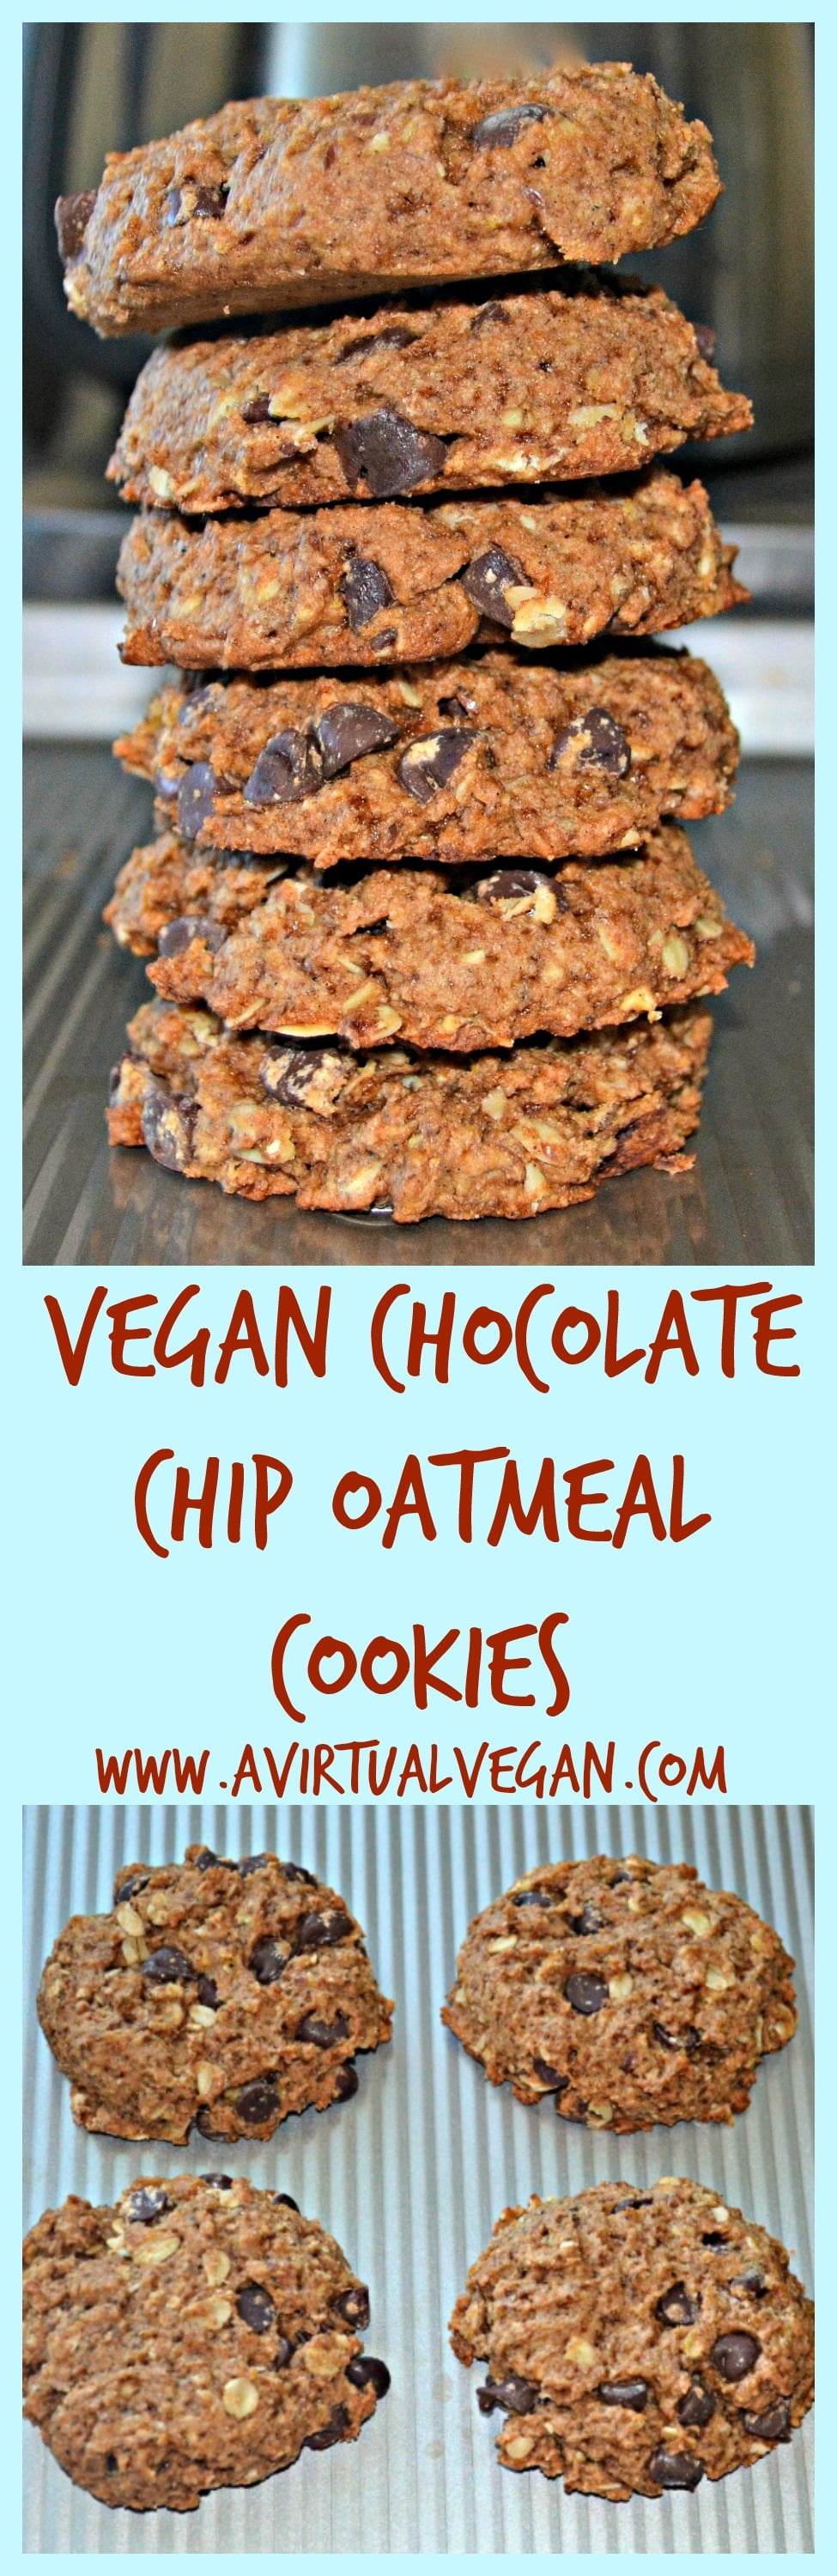 Use your leftover oat milk pulp to make these healthier, delicious, soft & chewy Chocolate Chip Oatmeal Cookies #oatpulp #oatmilk #cookies #oatmealcookies #vegan